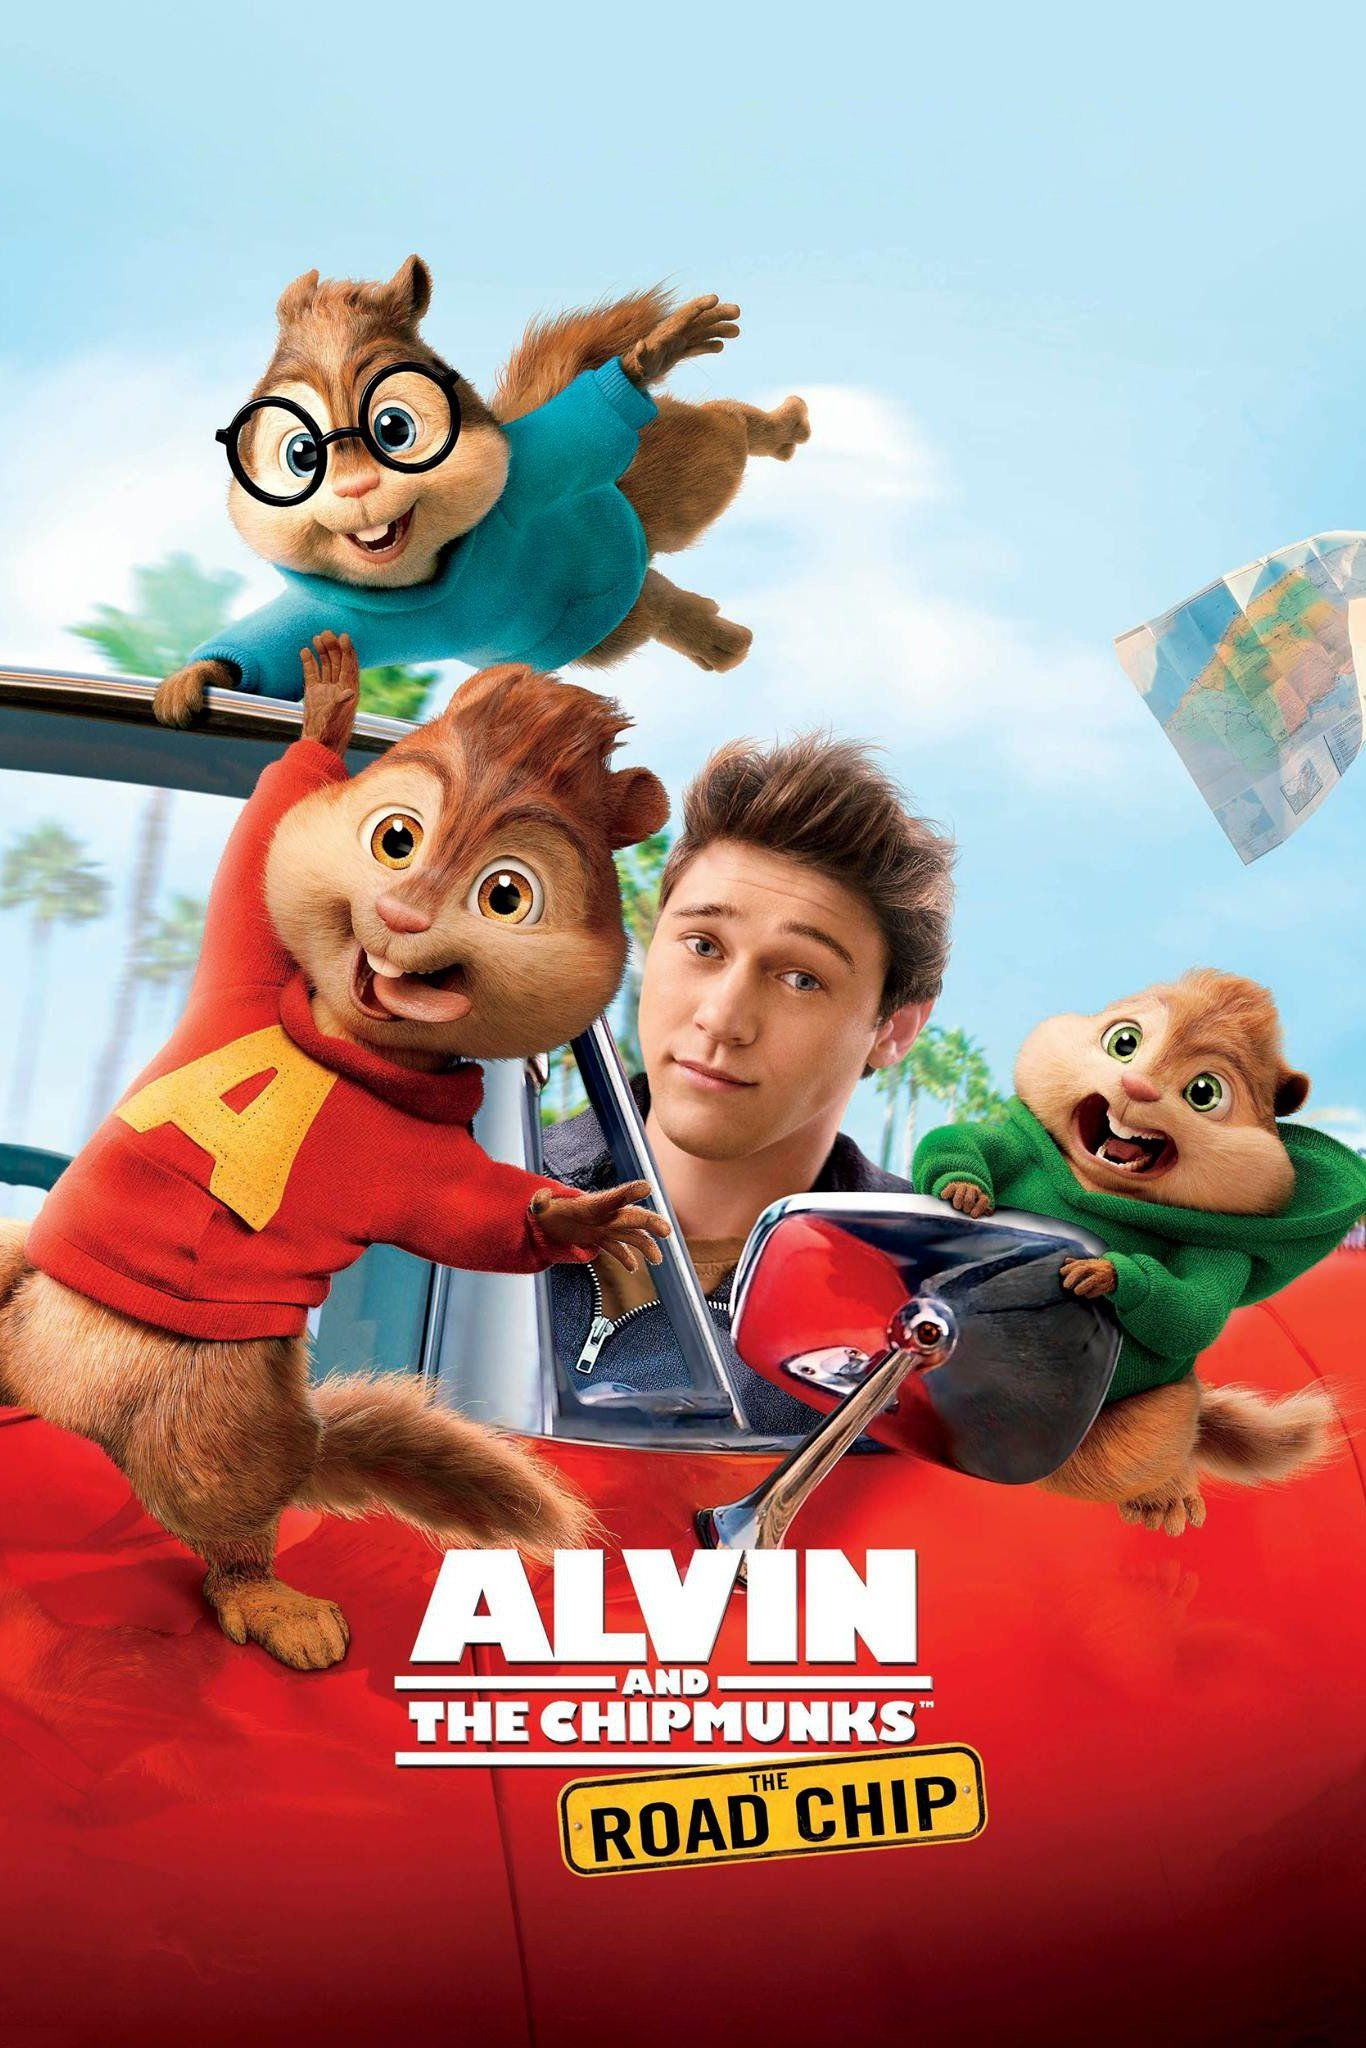 alvin and the chipmunks 1 full movie free download utorrent